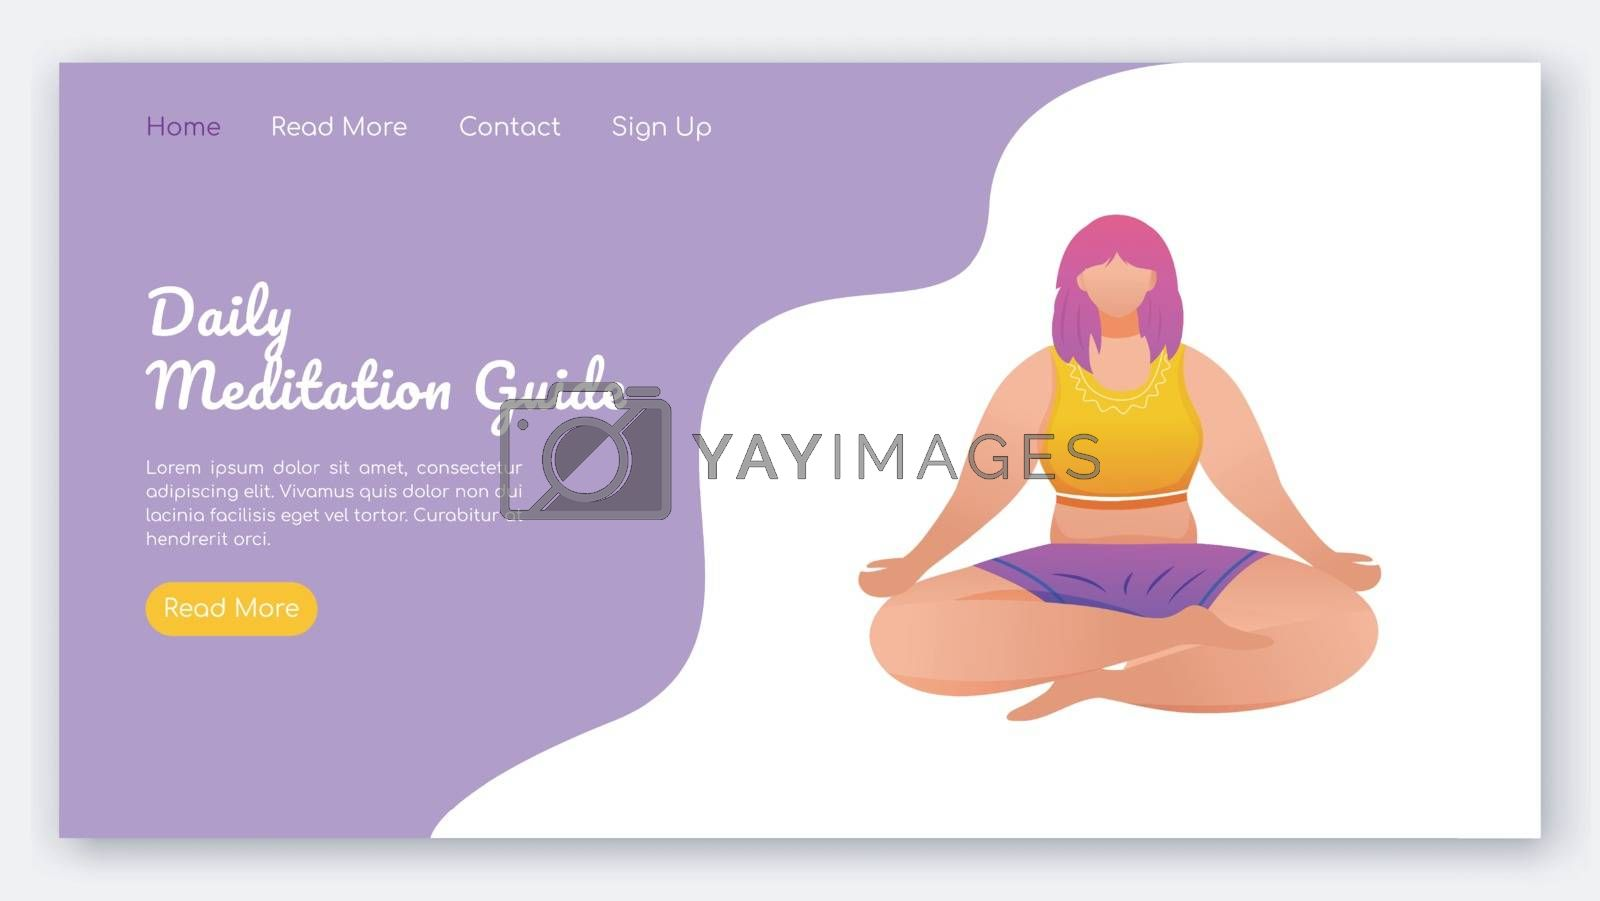 Daily meditation guide landing page vector template. Yoga poses. Healthy lifestyle. Bodypositive website interface idea with flat illustrations. Homepage layout, web banner, webpage cartoon concept